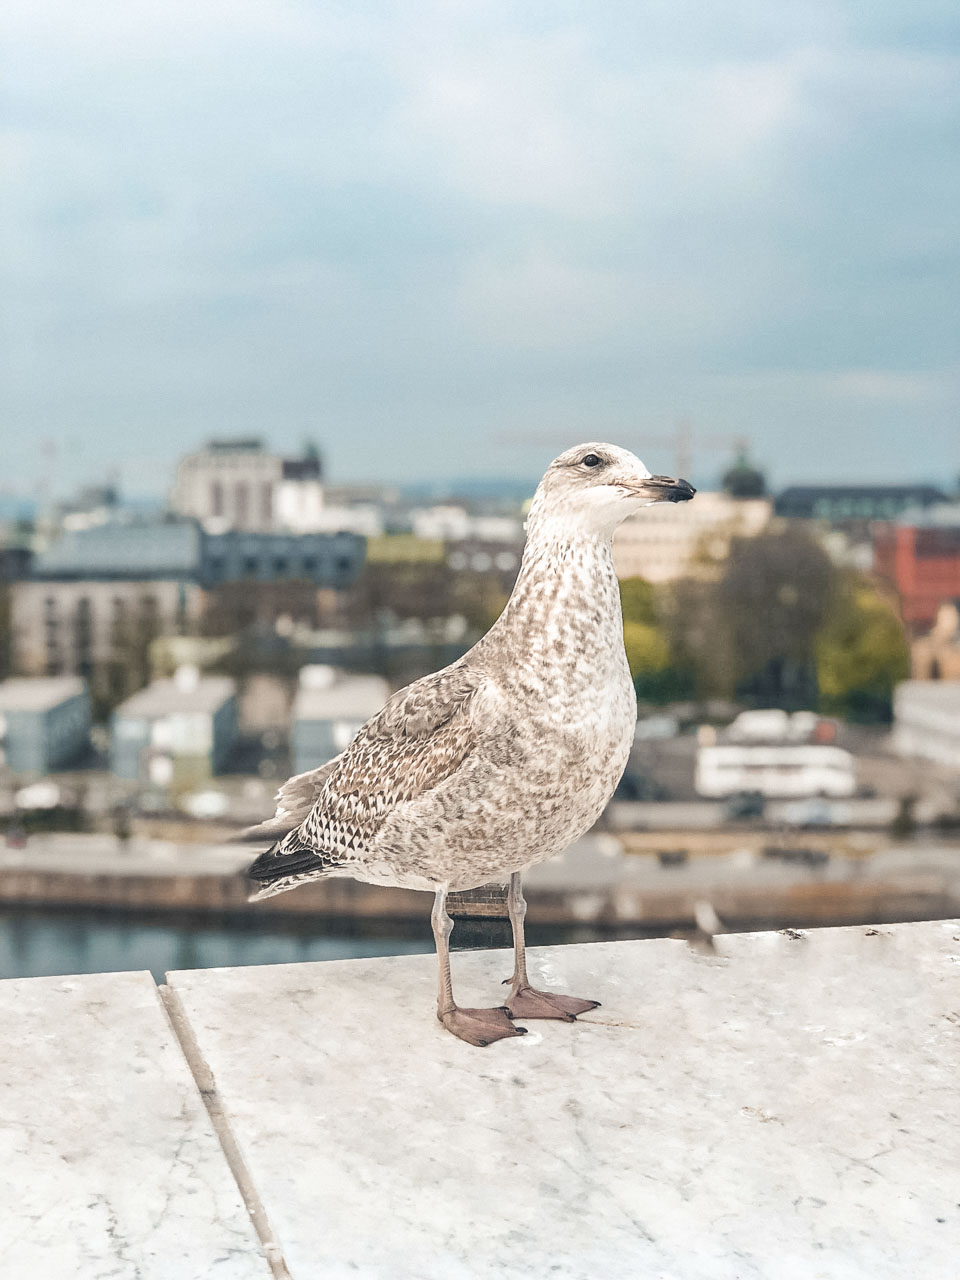 A seagull sitting on the ledge of The Norwegian National Opera & Ballet in Oslo, Norway